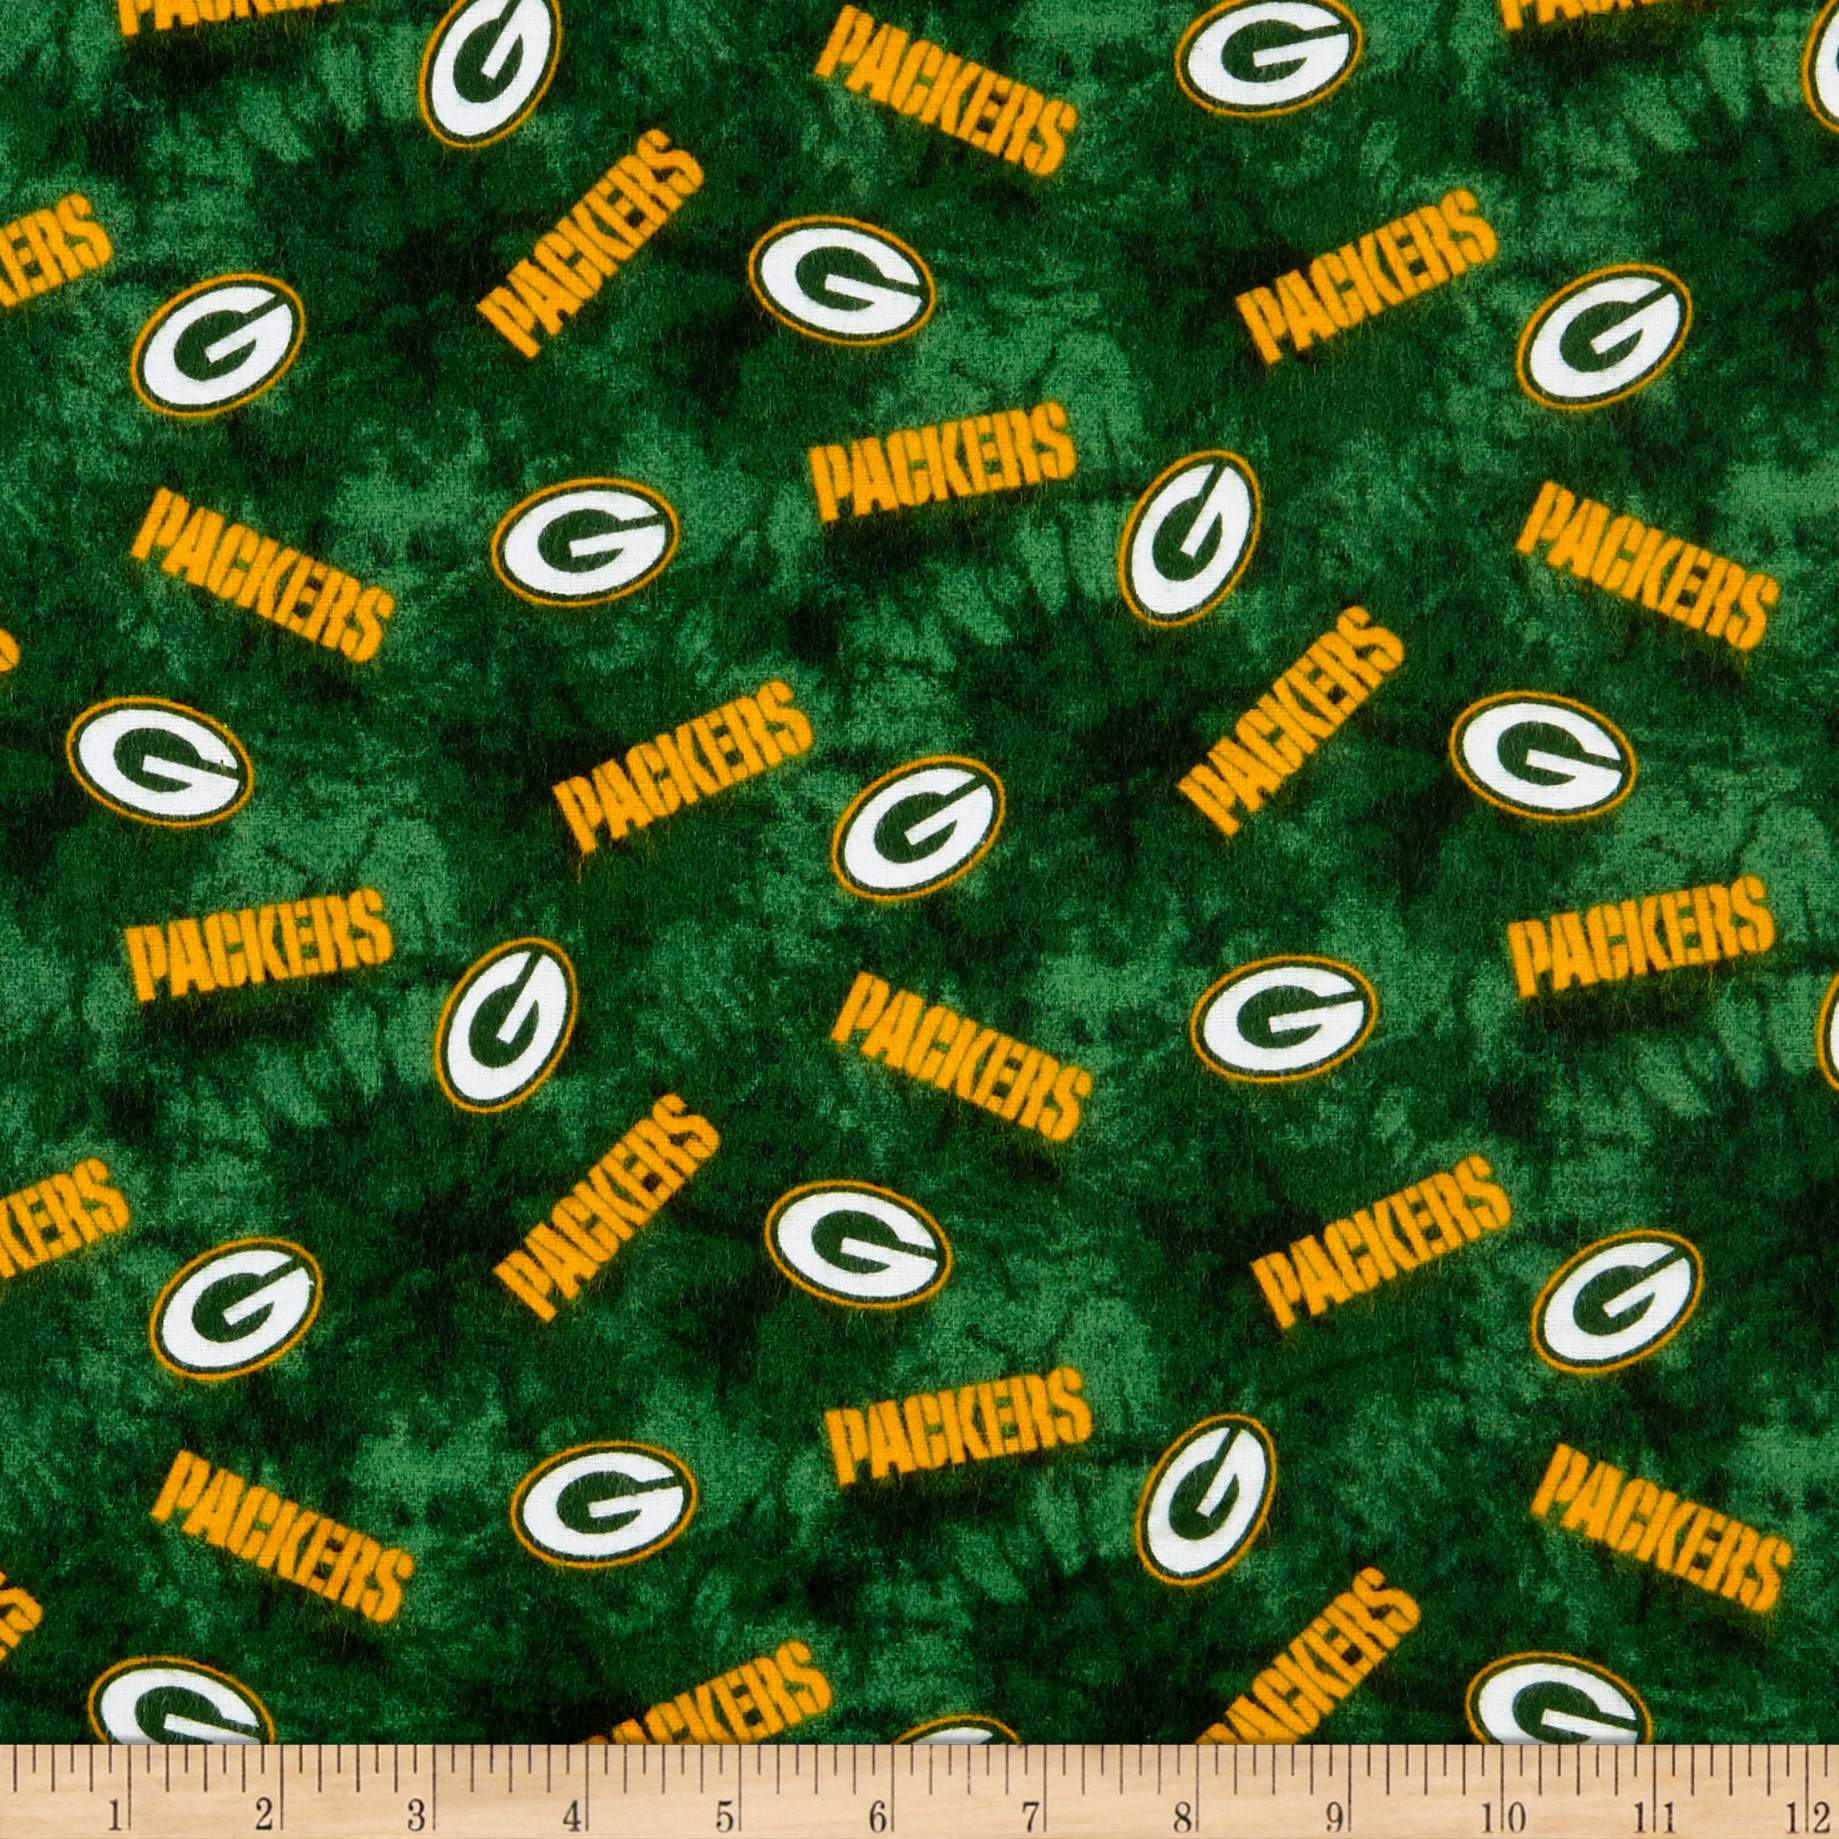 INOpets.com Anything for Pets Parents & Their Pets NFL Flannel Green Bay Packers Green Fabric